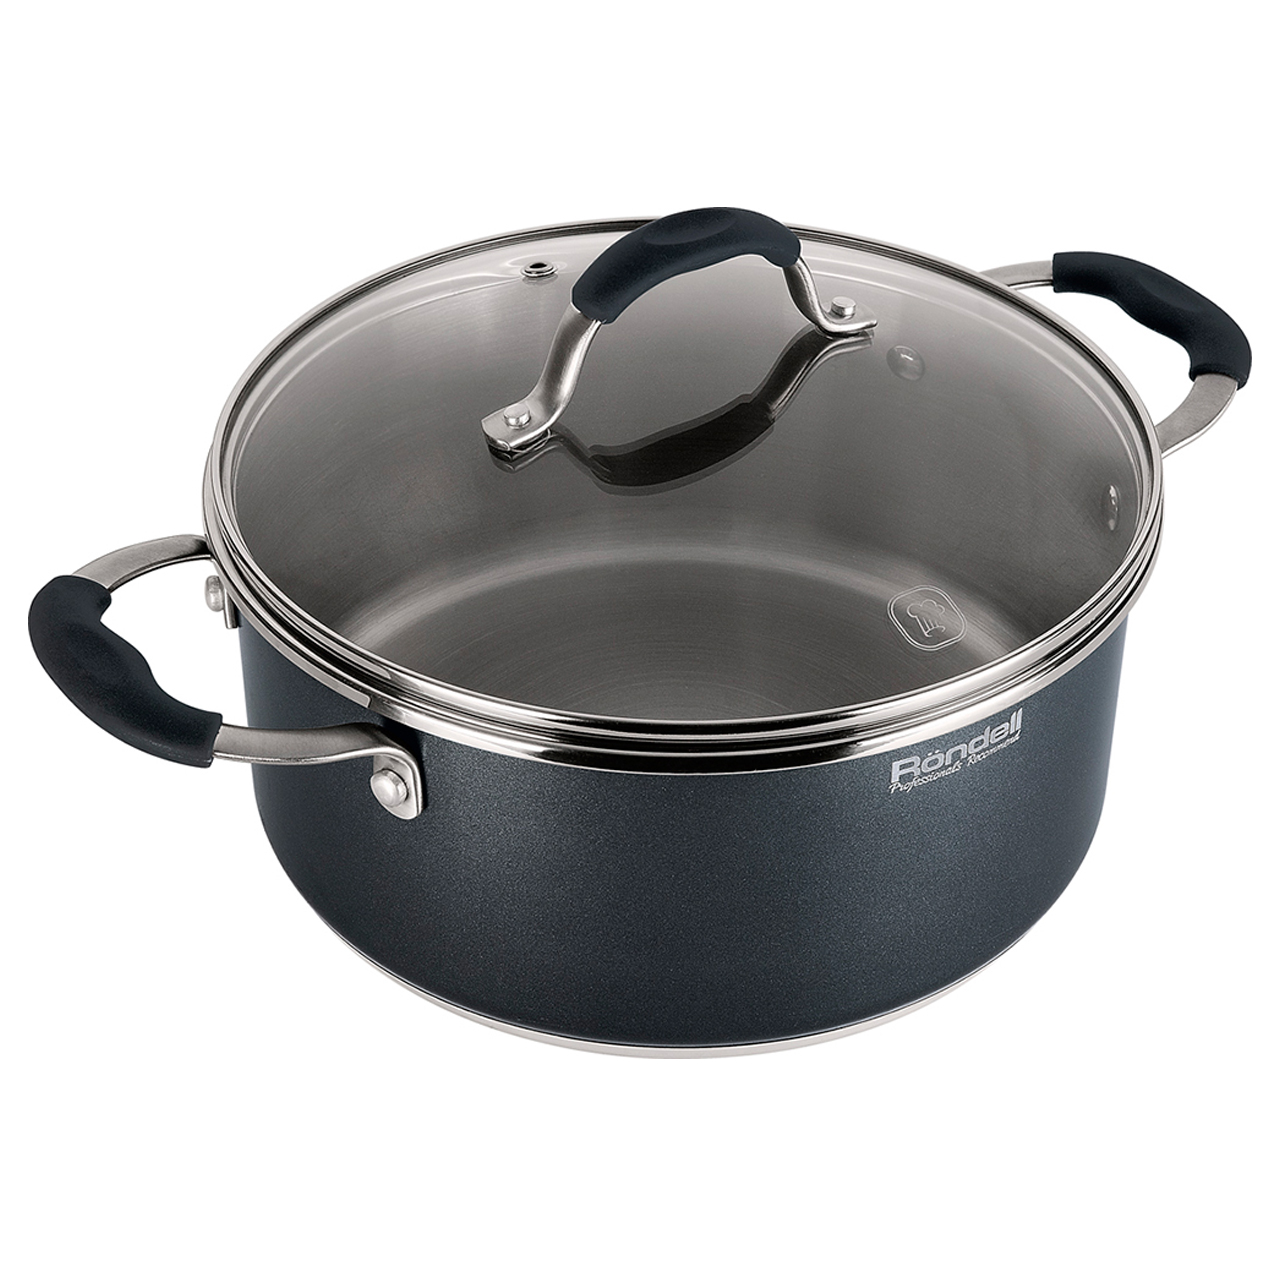 Pot with lid Rondell Stern RDS-019 (Diameter 24 cm, volume 4.7 l stainless steel non-stick coating, suitable for all types of plates) цена в Москве и Питере